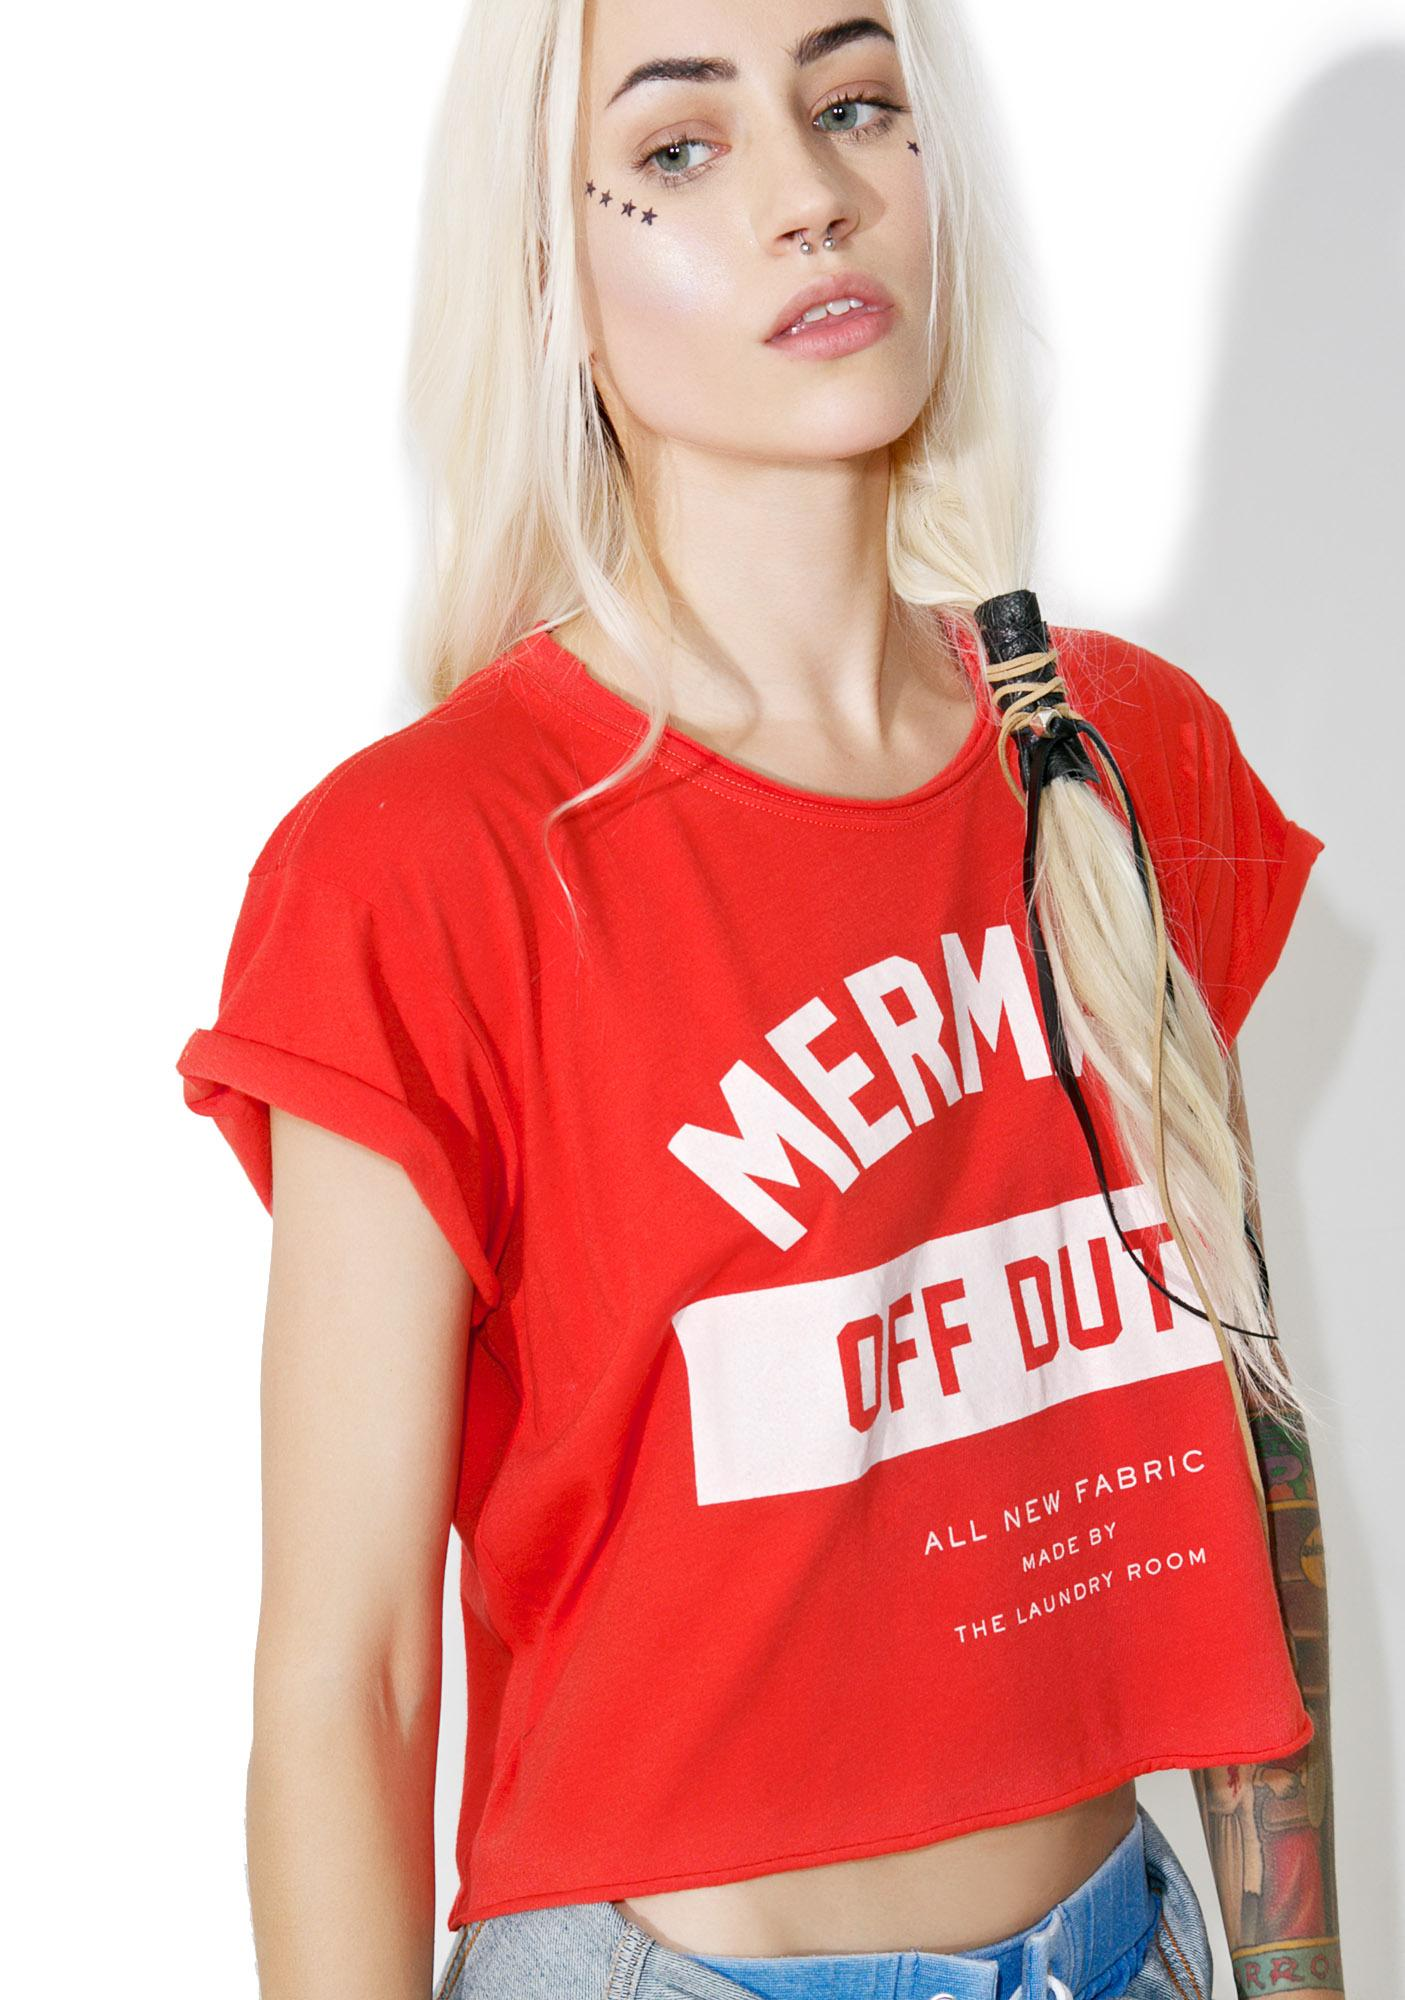 The Laundry Room Mermaid Off Duty Uniform Tee